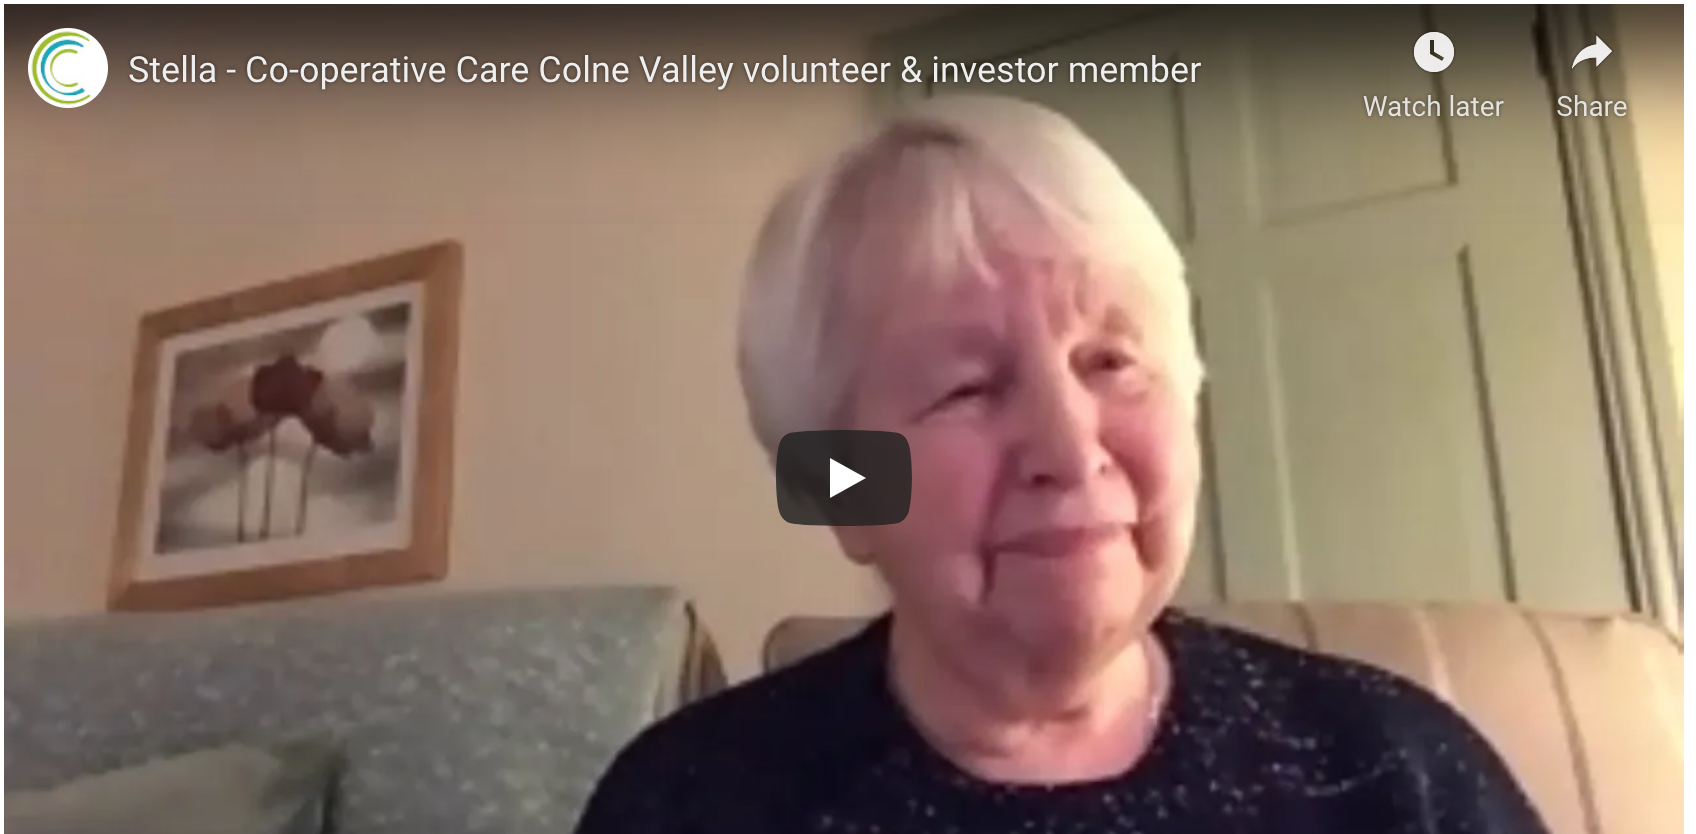 Volunteering in home care with Cooperative Care Colne Valley